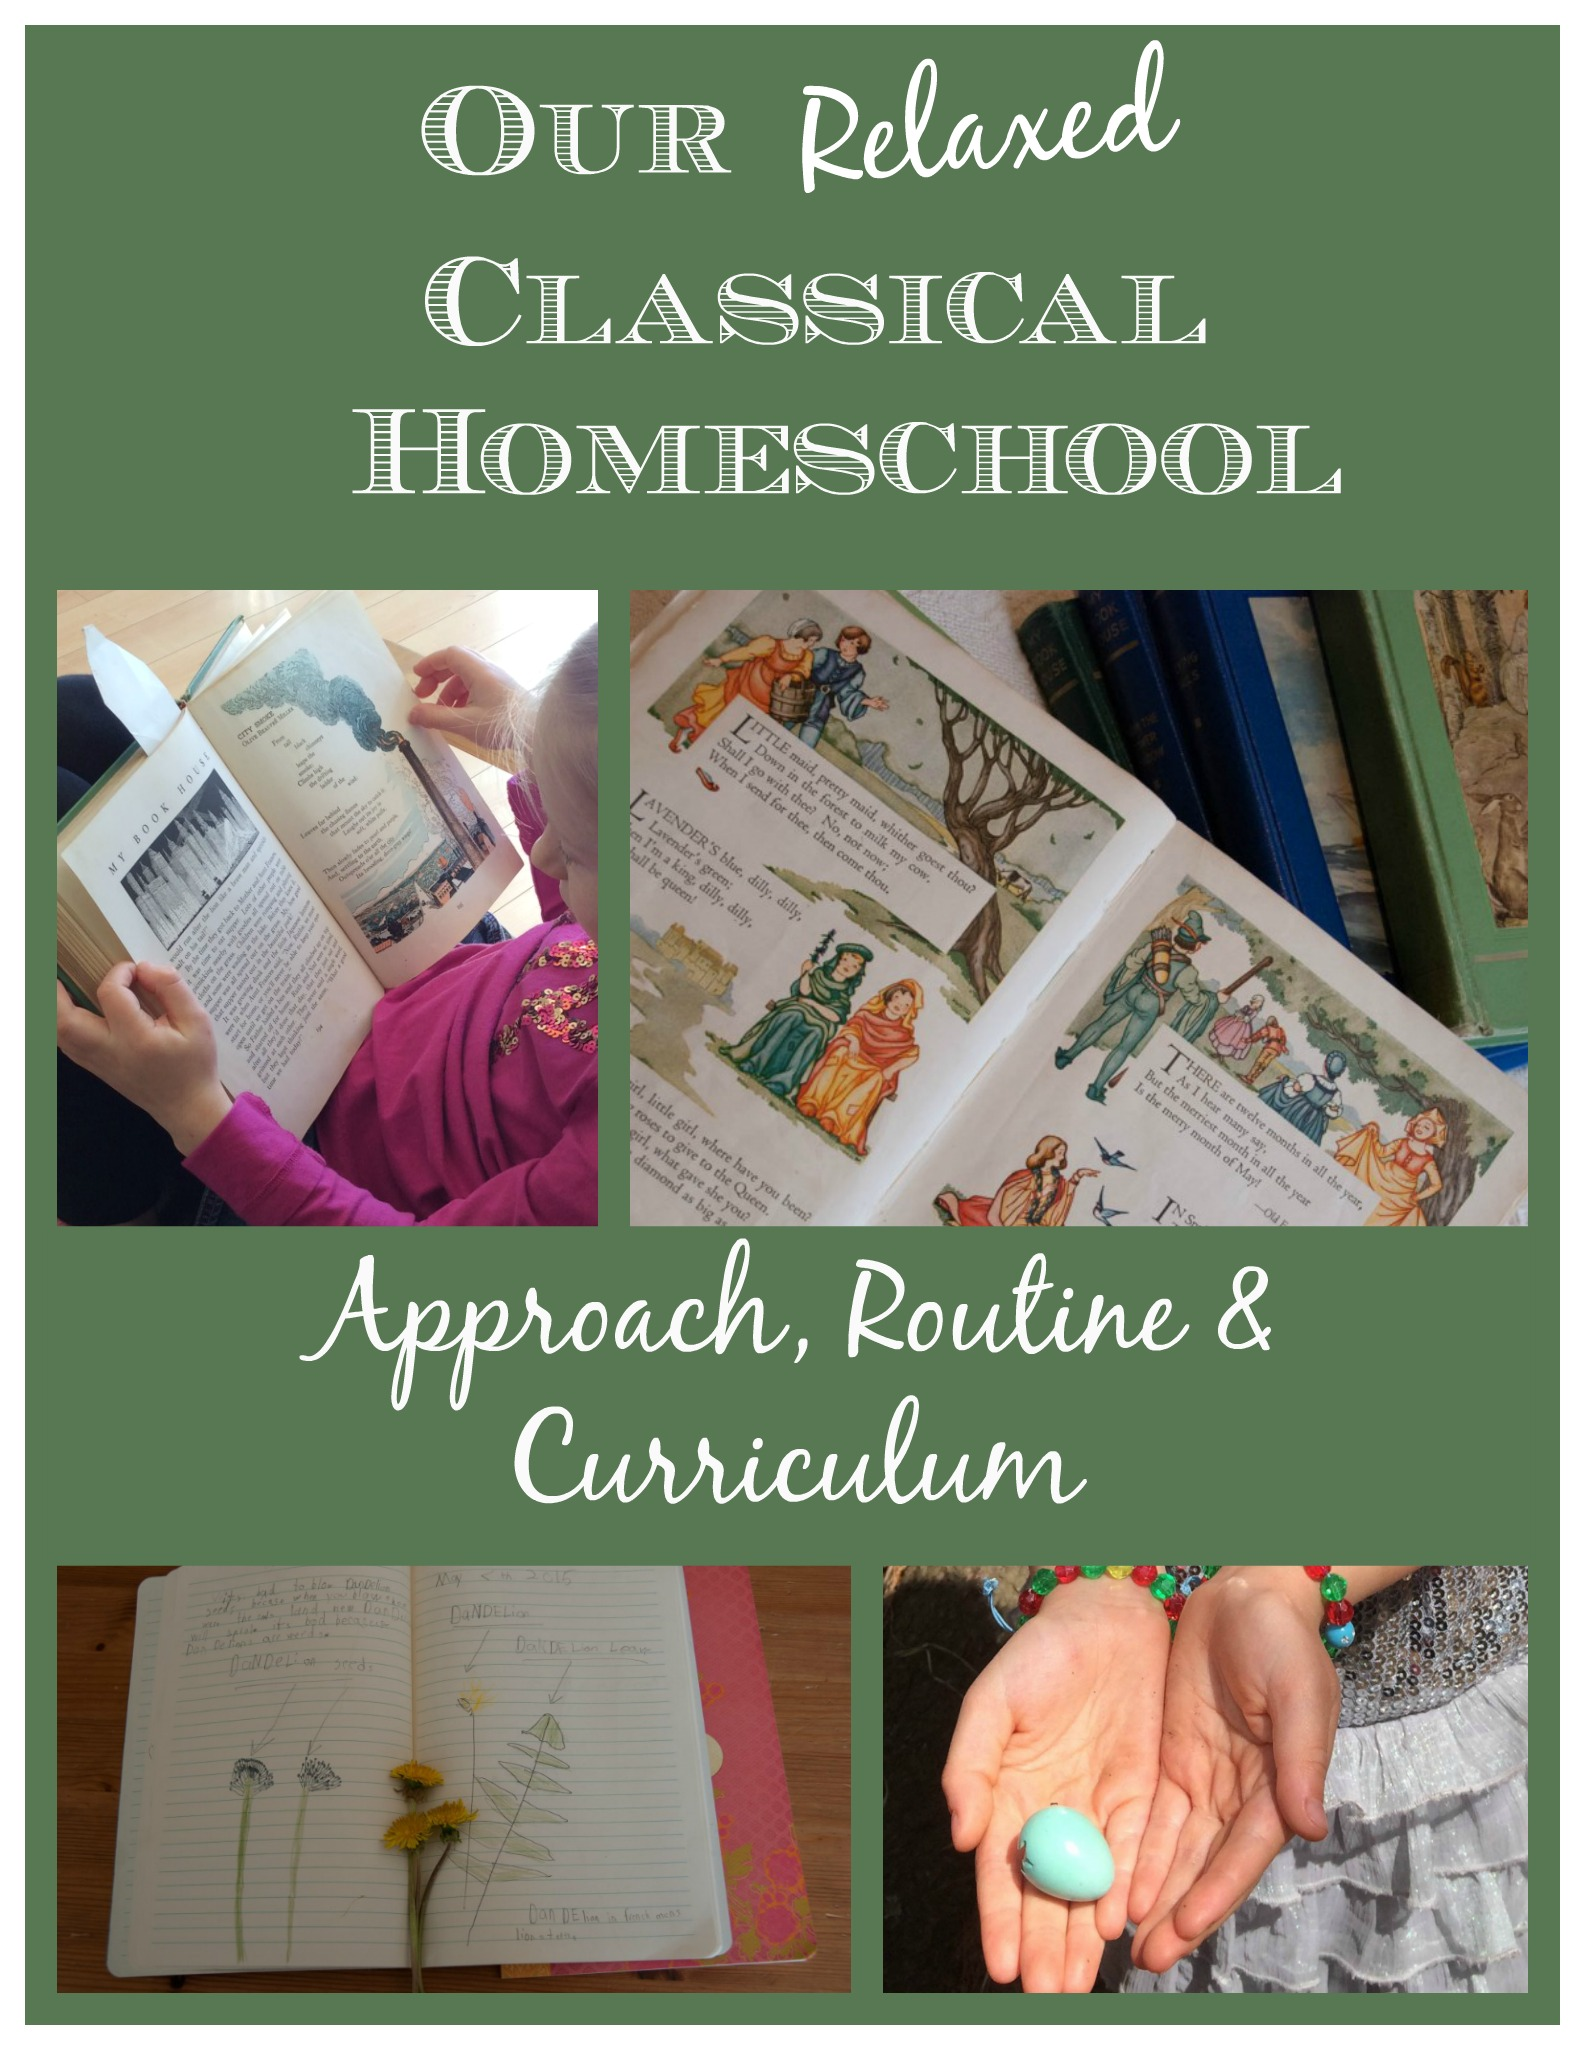 Our Relaxed Classical Homeschool: approach, routine & curriculum